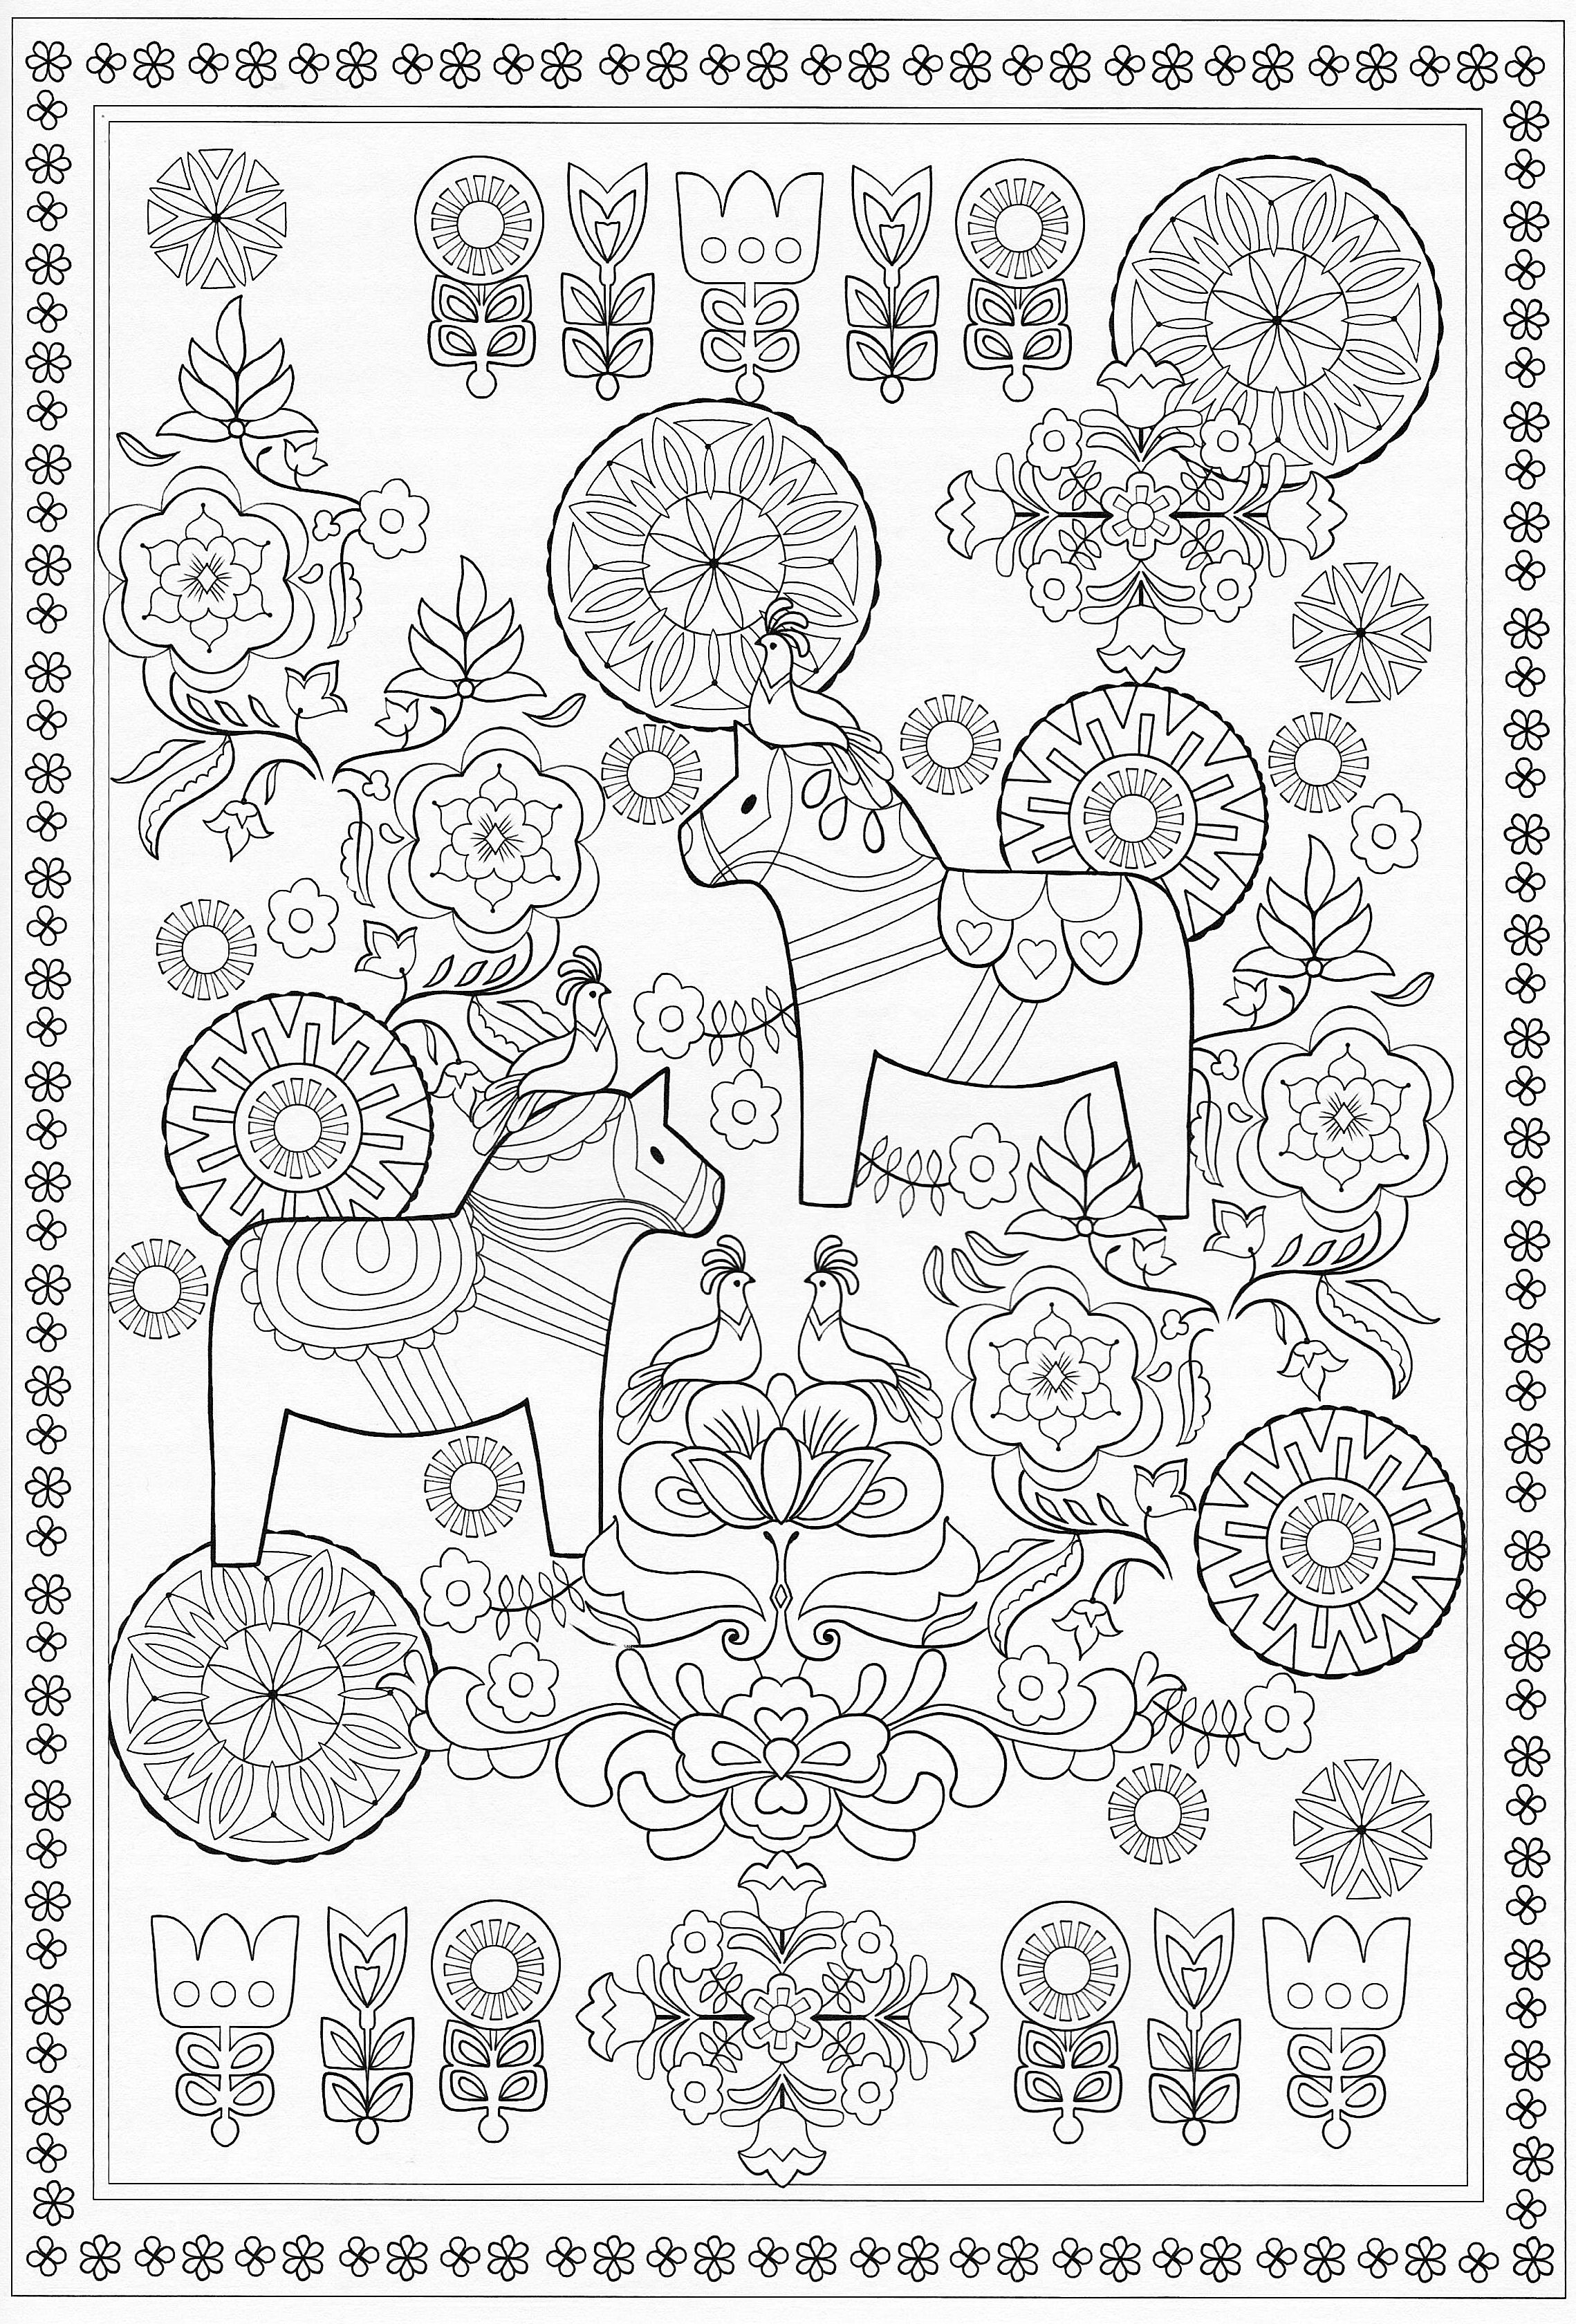 - Scandinavian Coloring Book Pg 58 Coloring Pages, Coloring Books